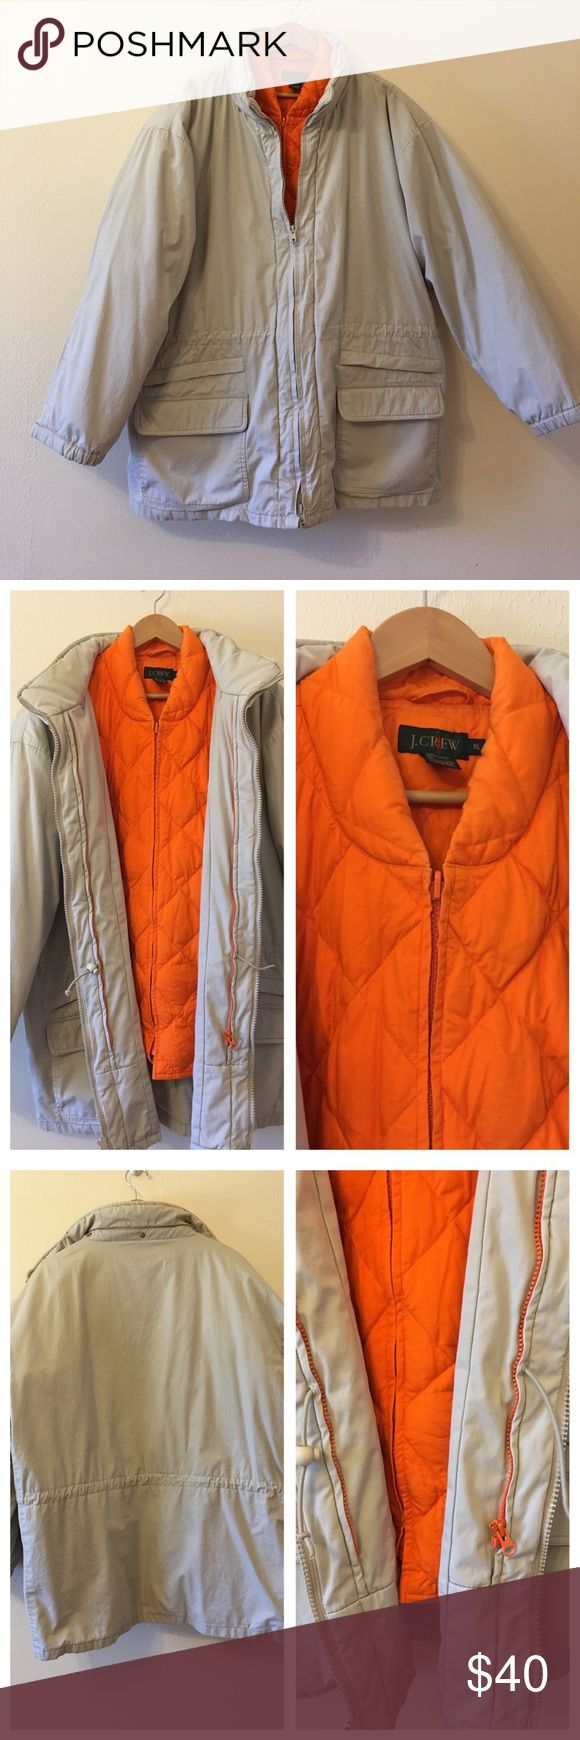 J. Crew 3-in-1 down jacket This is a jacket with a down jacket inside and a another jacket outside. The orange down jacket can also be worn as a vest. Many spacious pockets. You can zip up the orange jacket to the tan one or zip it on its own. There is a stain on the inside of the orange jacket. It cannot be seen when you are wearing it. It is in used condition but still has a lot of life left and very clean. J. Crew Jackets & Coats